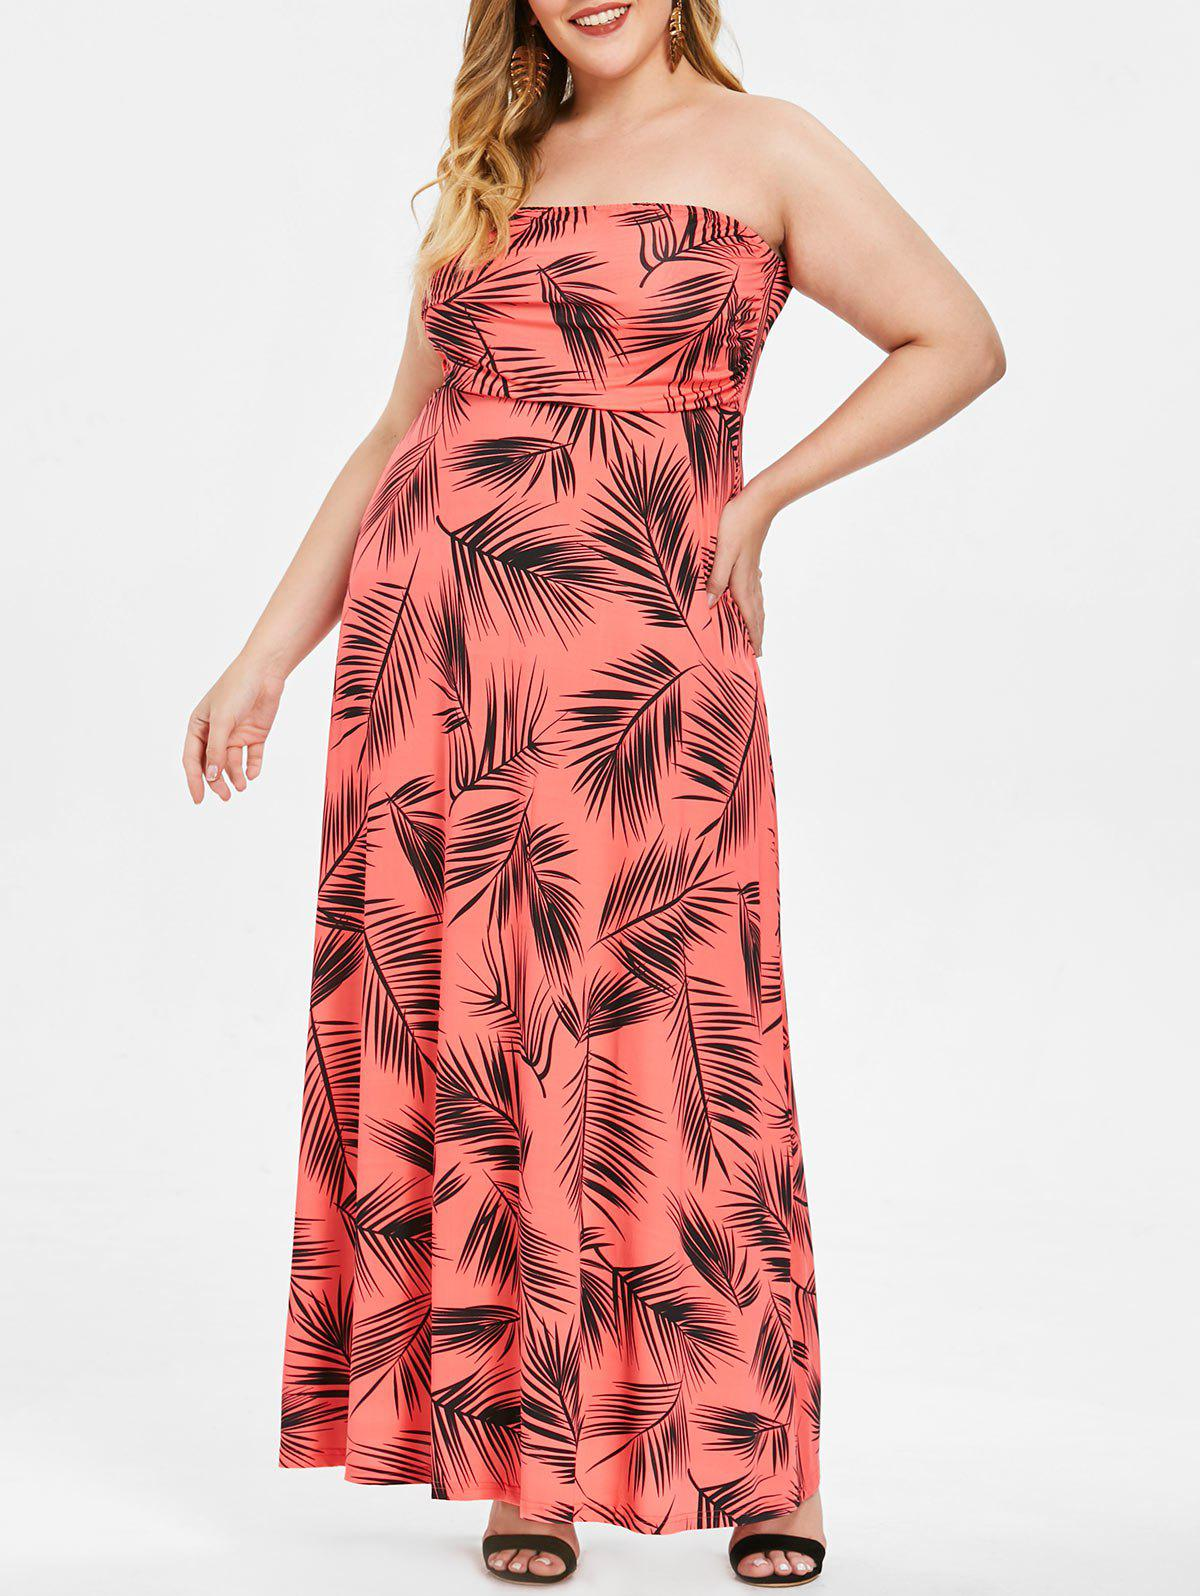 Strapless Plus Size Tropical Print Maxi Dress